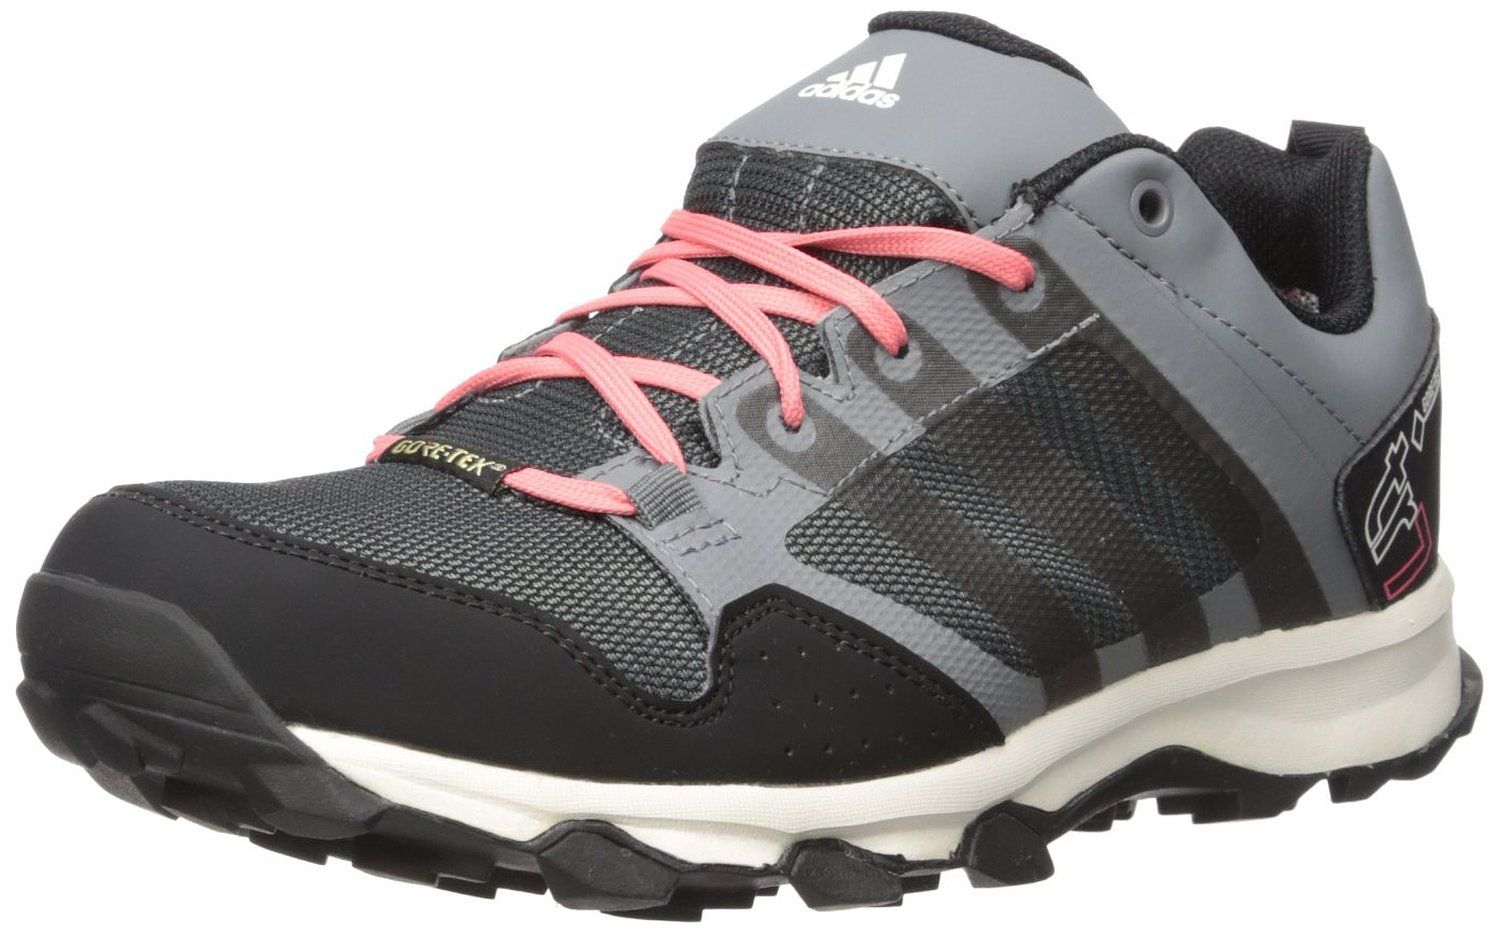 5c5d4f593a8ca adidas Outdoor Women s Kanadia 7 GTX Trail Runner    Read more reviews of  the product by visiting the link on the image.